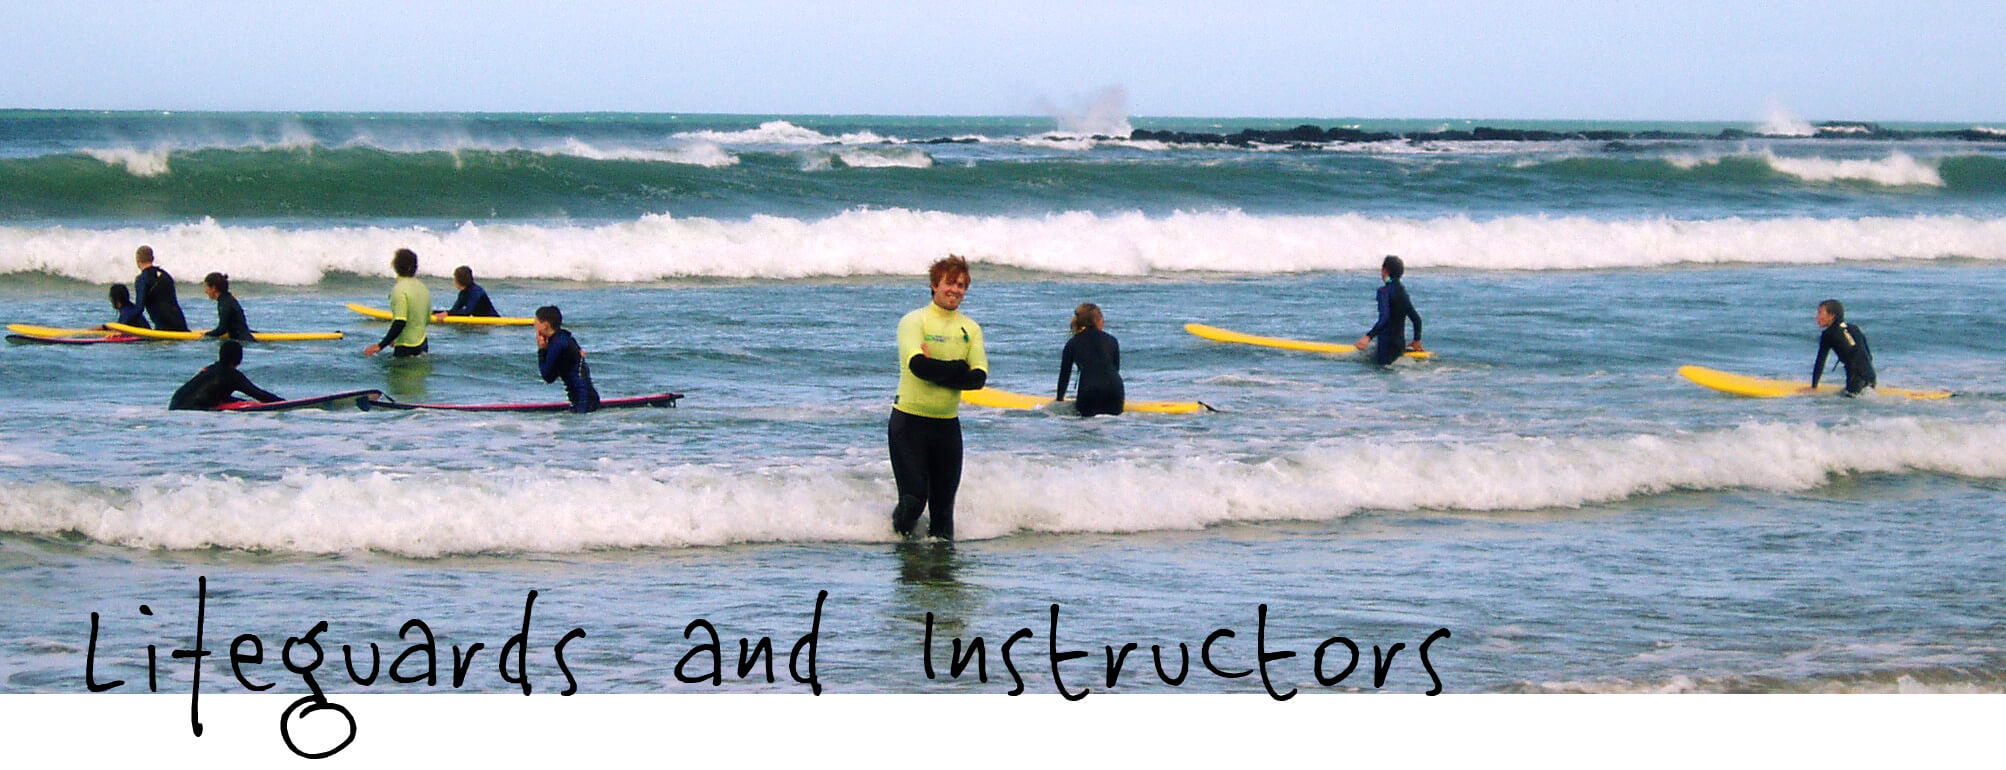 Lifeguards and Instructors